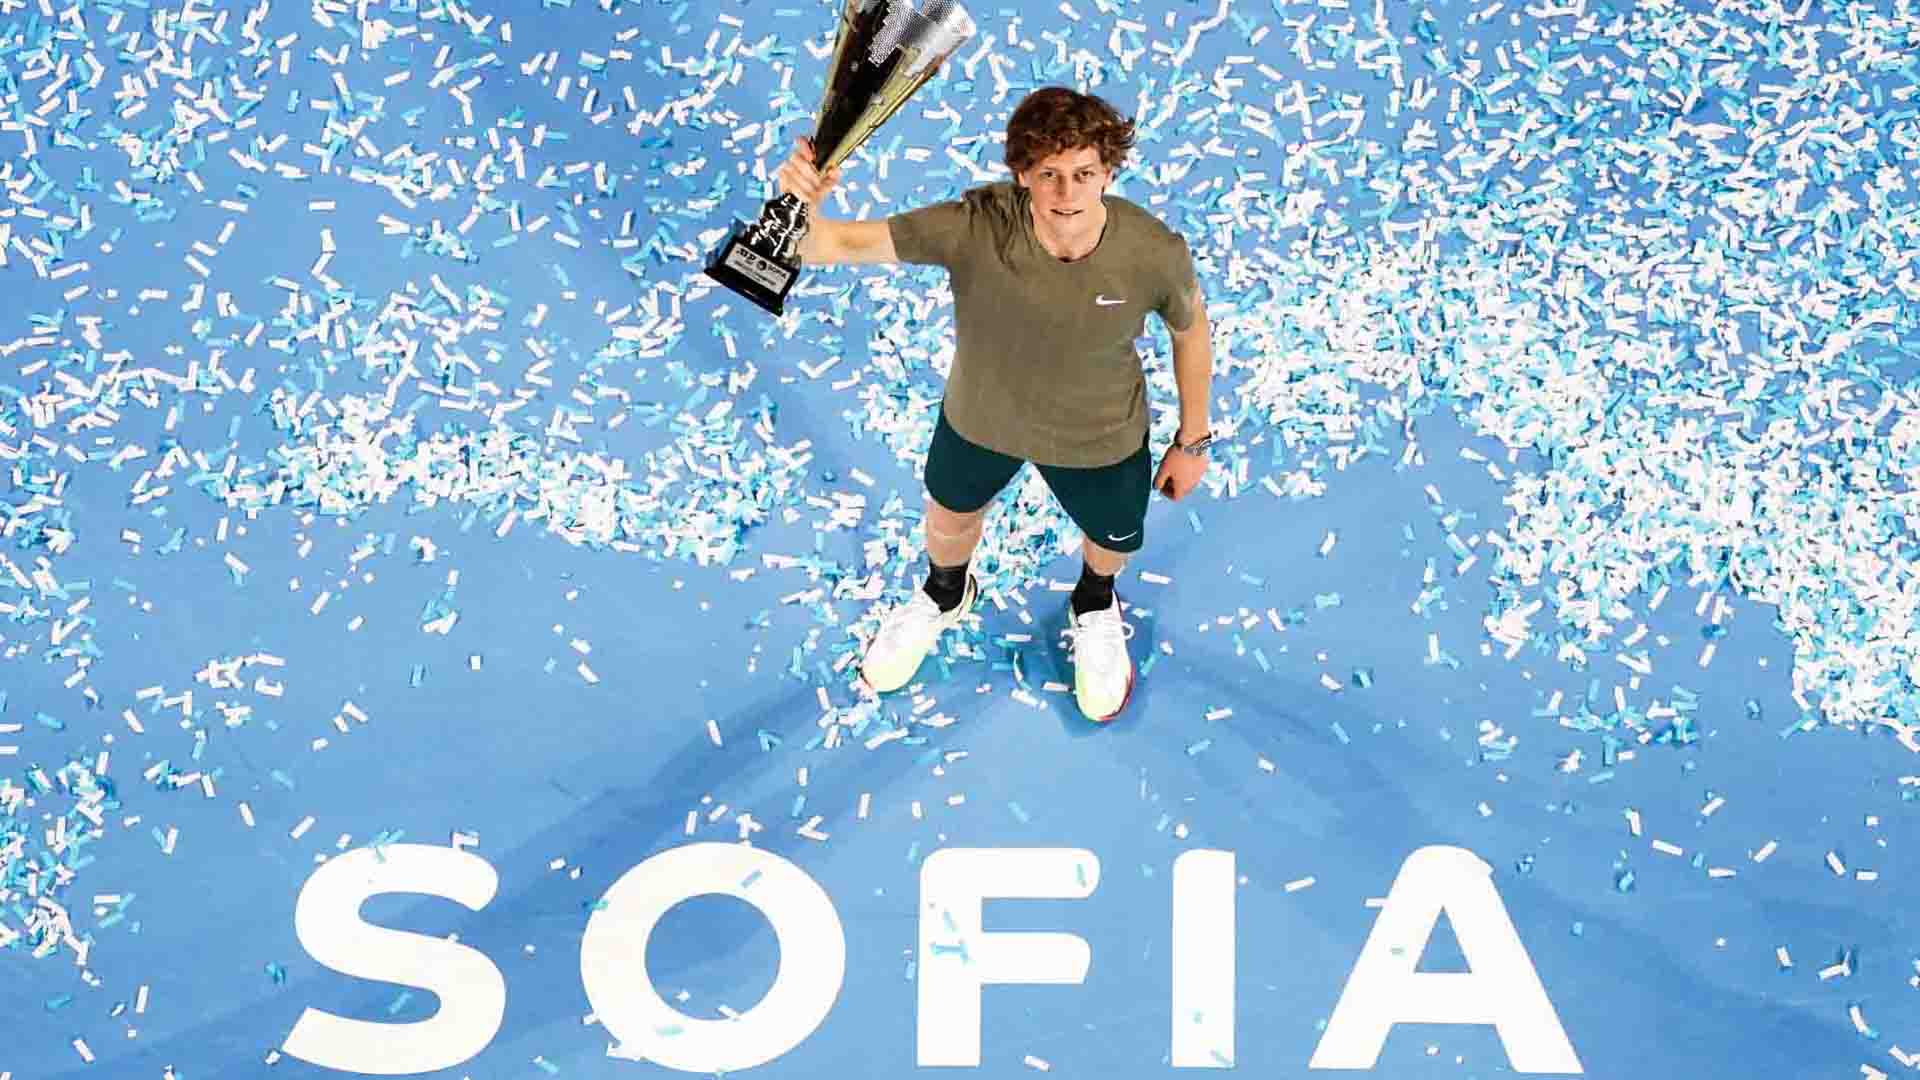 <a href='https://www.atptour.com/en/players/jannik-sinner/s0ag/overview'>Jannik Sinner</a> is the first Italian to win an ATP Tour singles title in 2020.